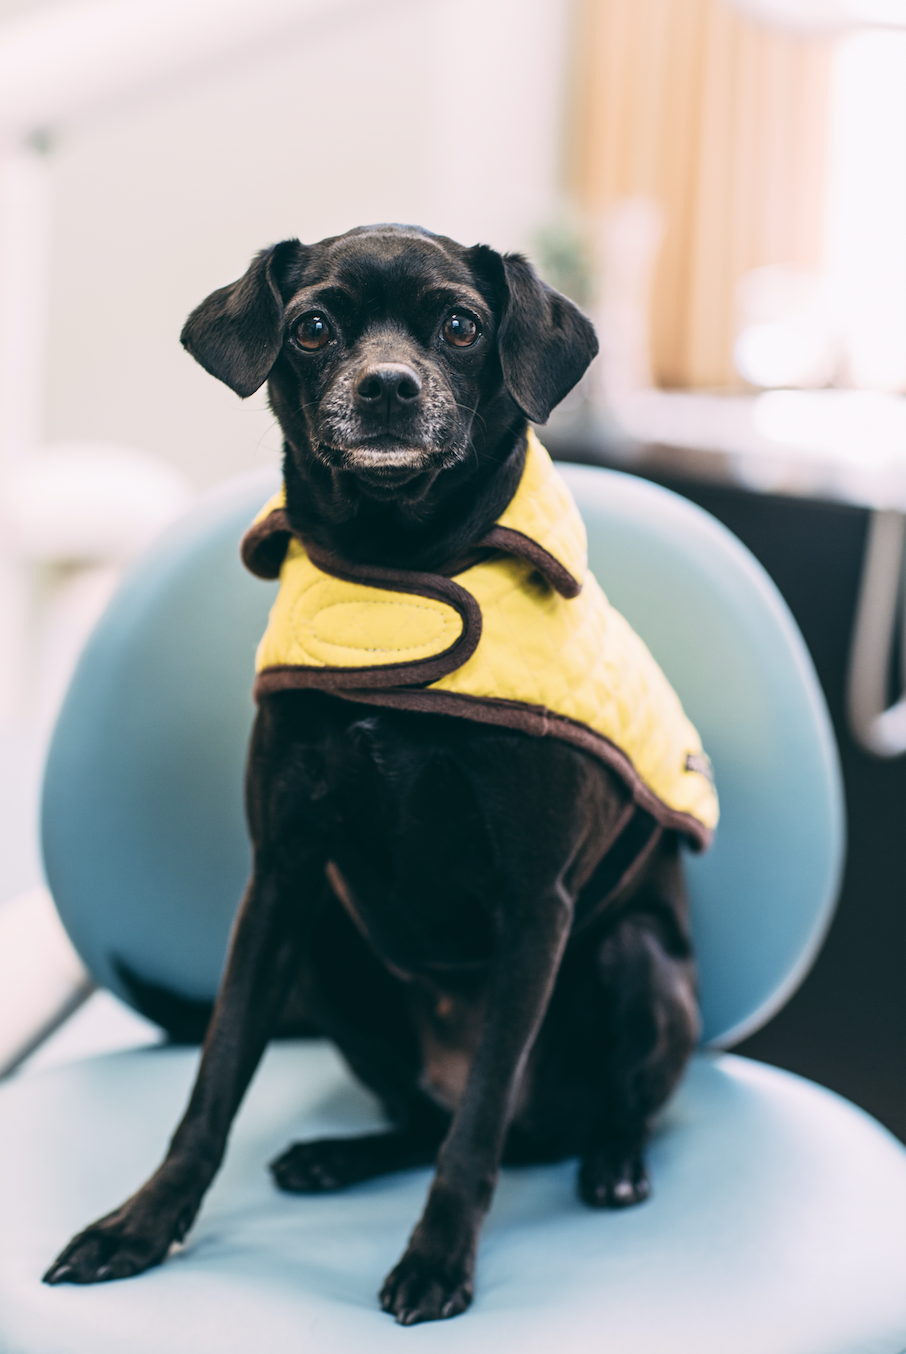 Pola - Canine Assistant/ Therapy DogPola is a sweet rescue dog (part pug, part chihuahua or